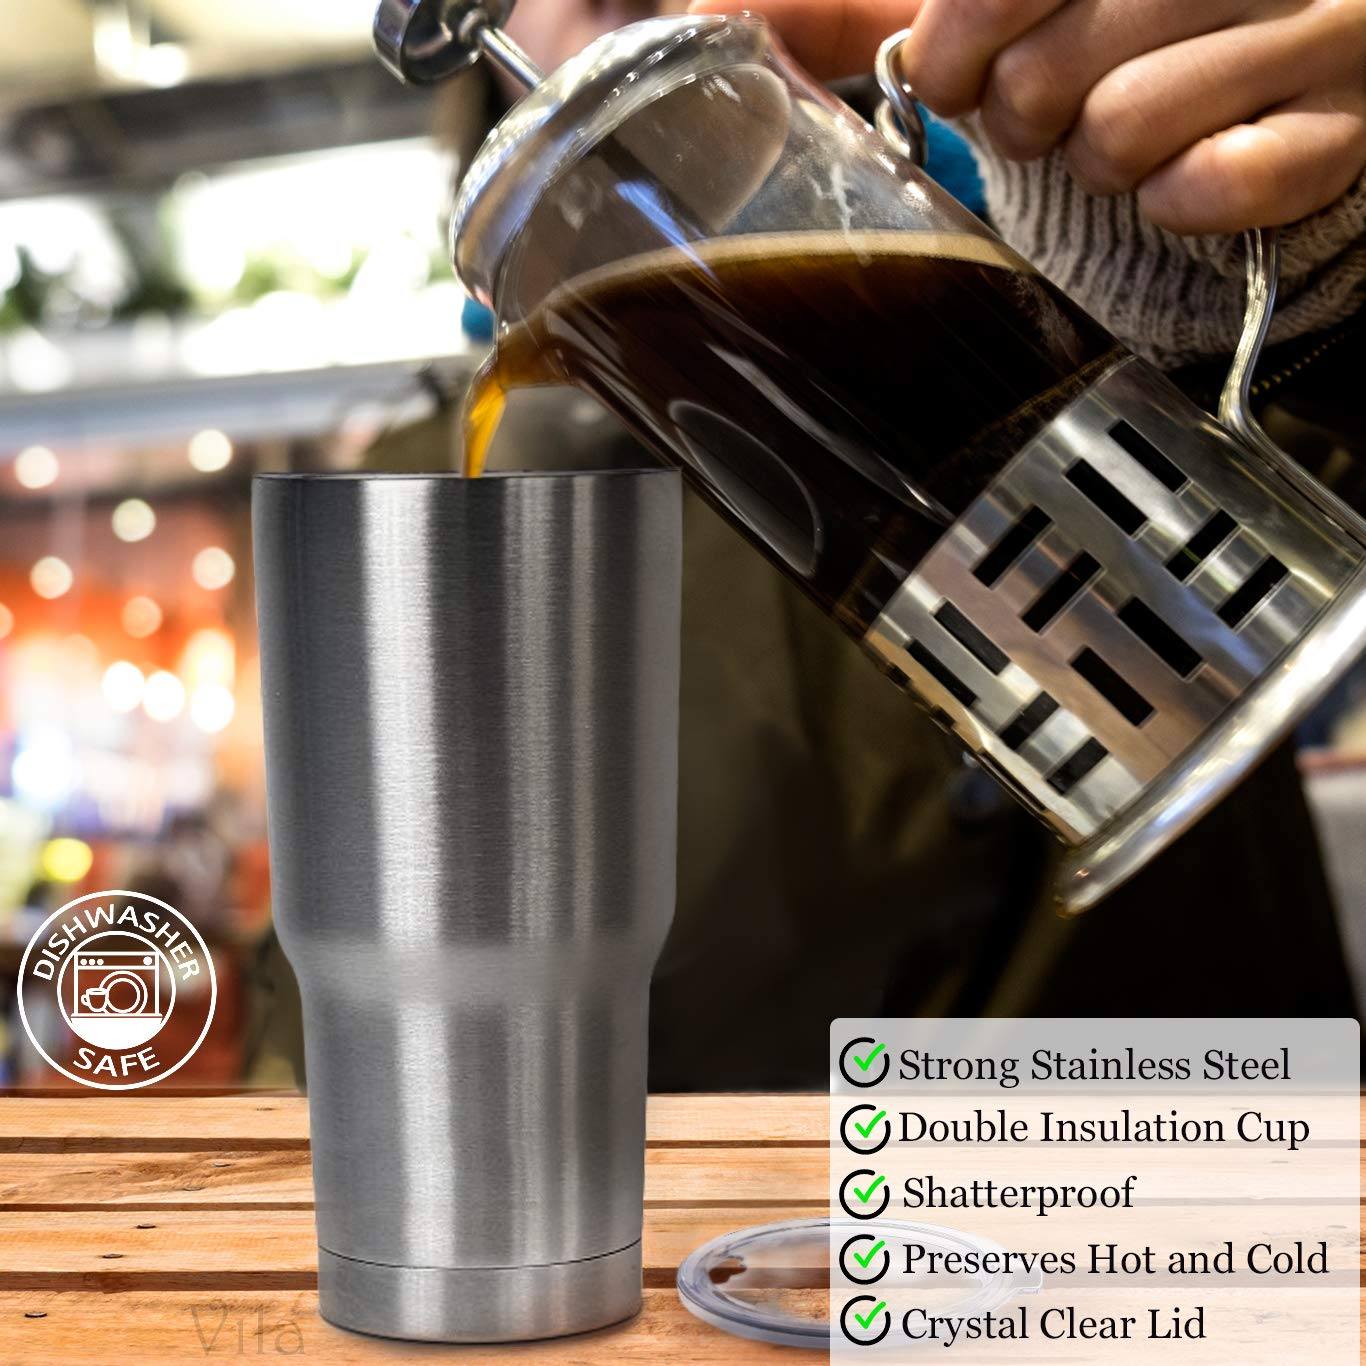 30oz Stainless Steel Travel Tumbler by Vila - BPA-free, double wall vacuum insulated - Tight transparent lid prevents spillage - Shatterproof, rustproof - Keeps Hot Drinks Hot and Cold Drinks Cold